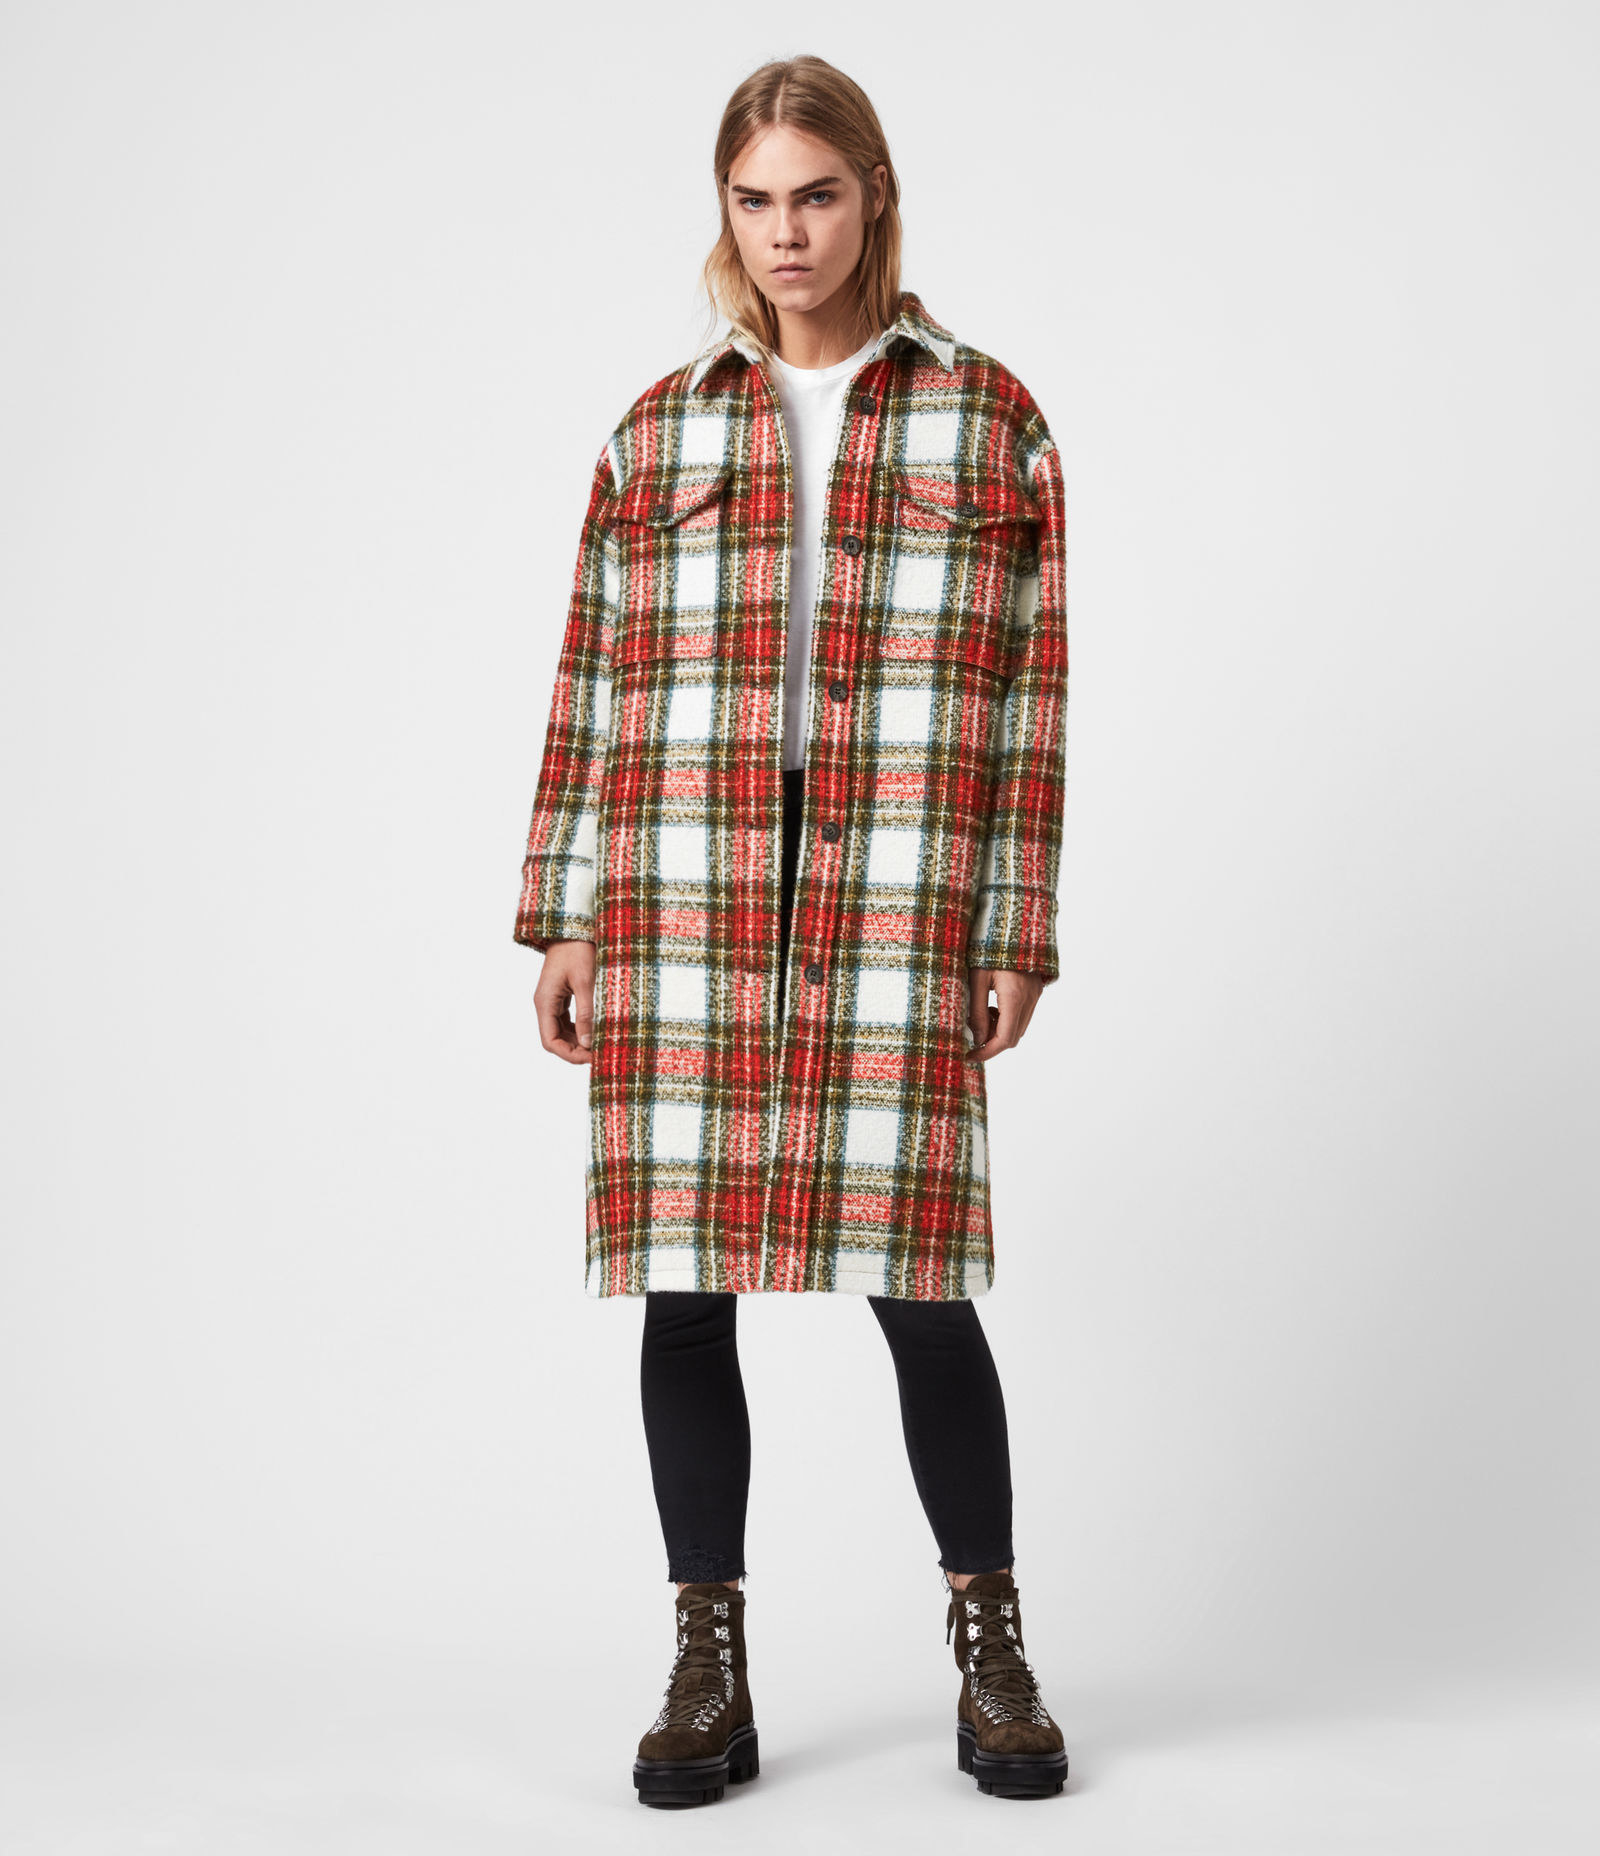 model wearing red and white checkered coat